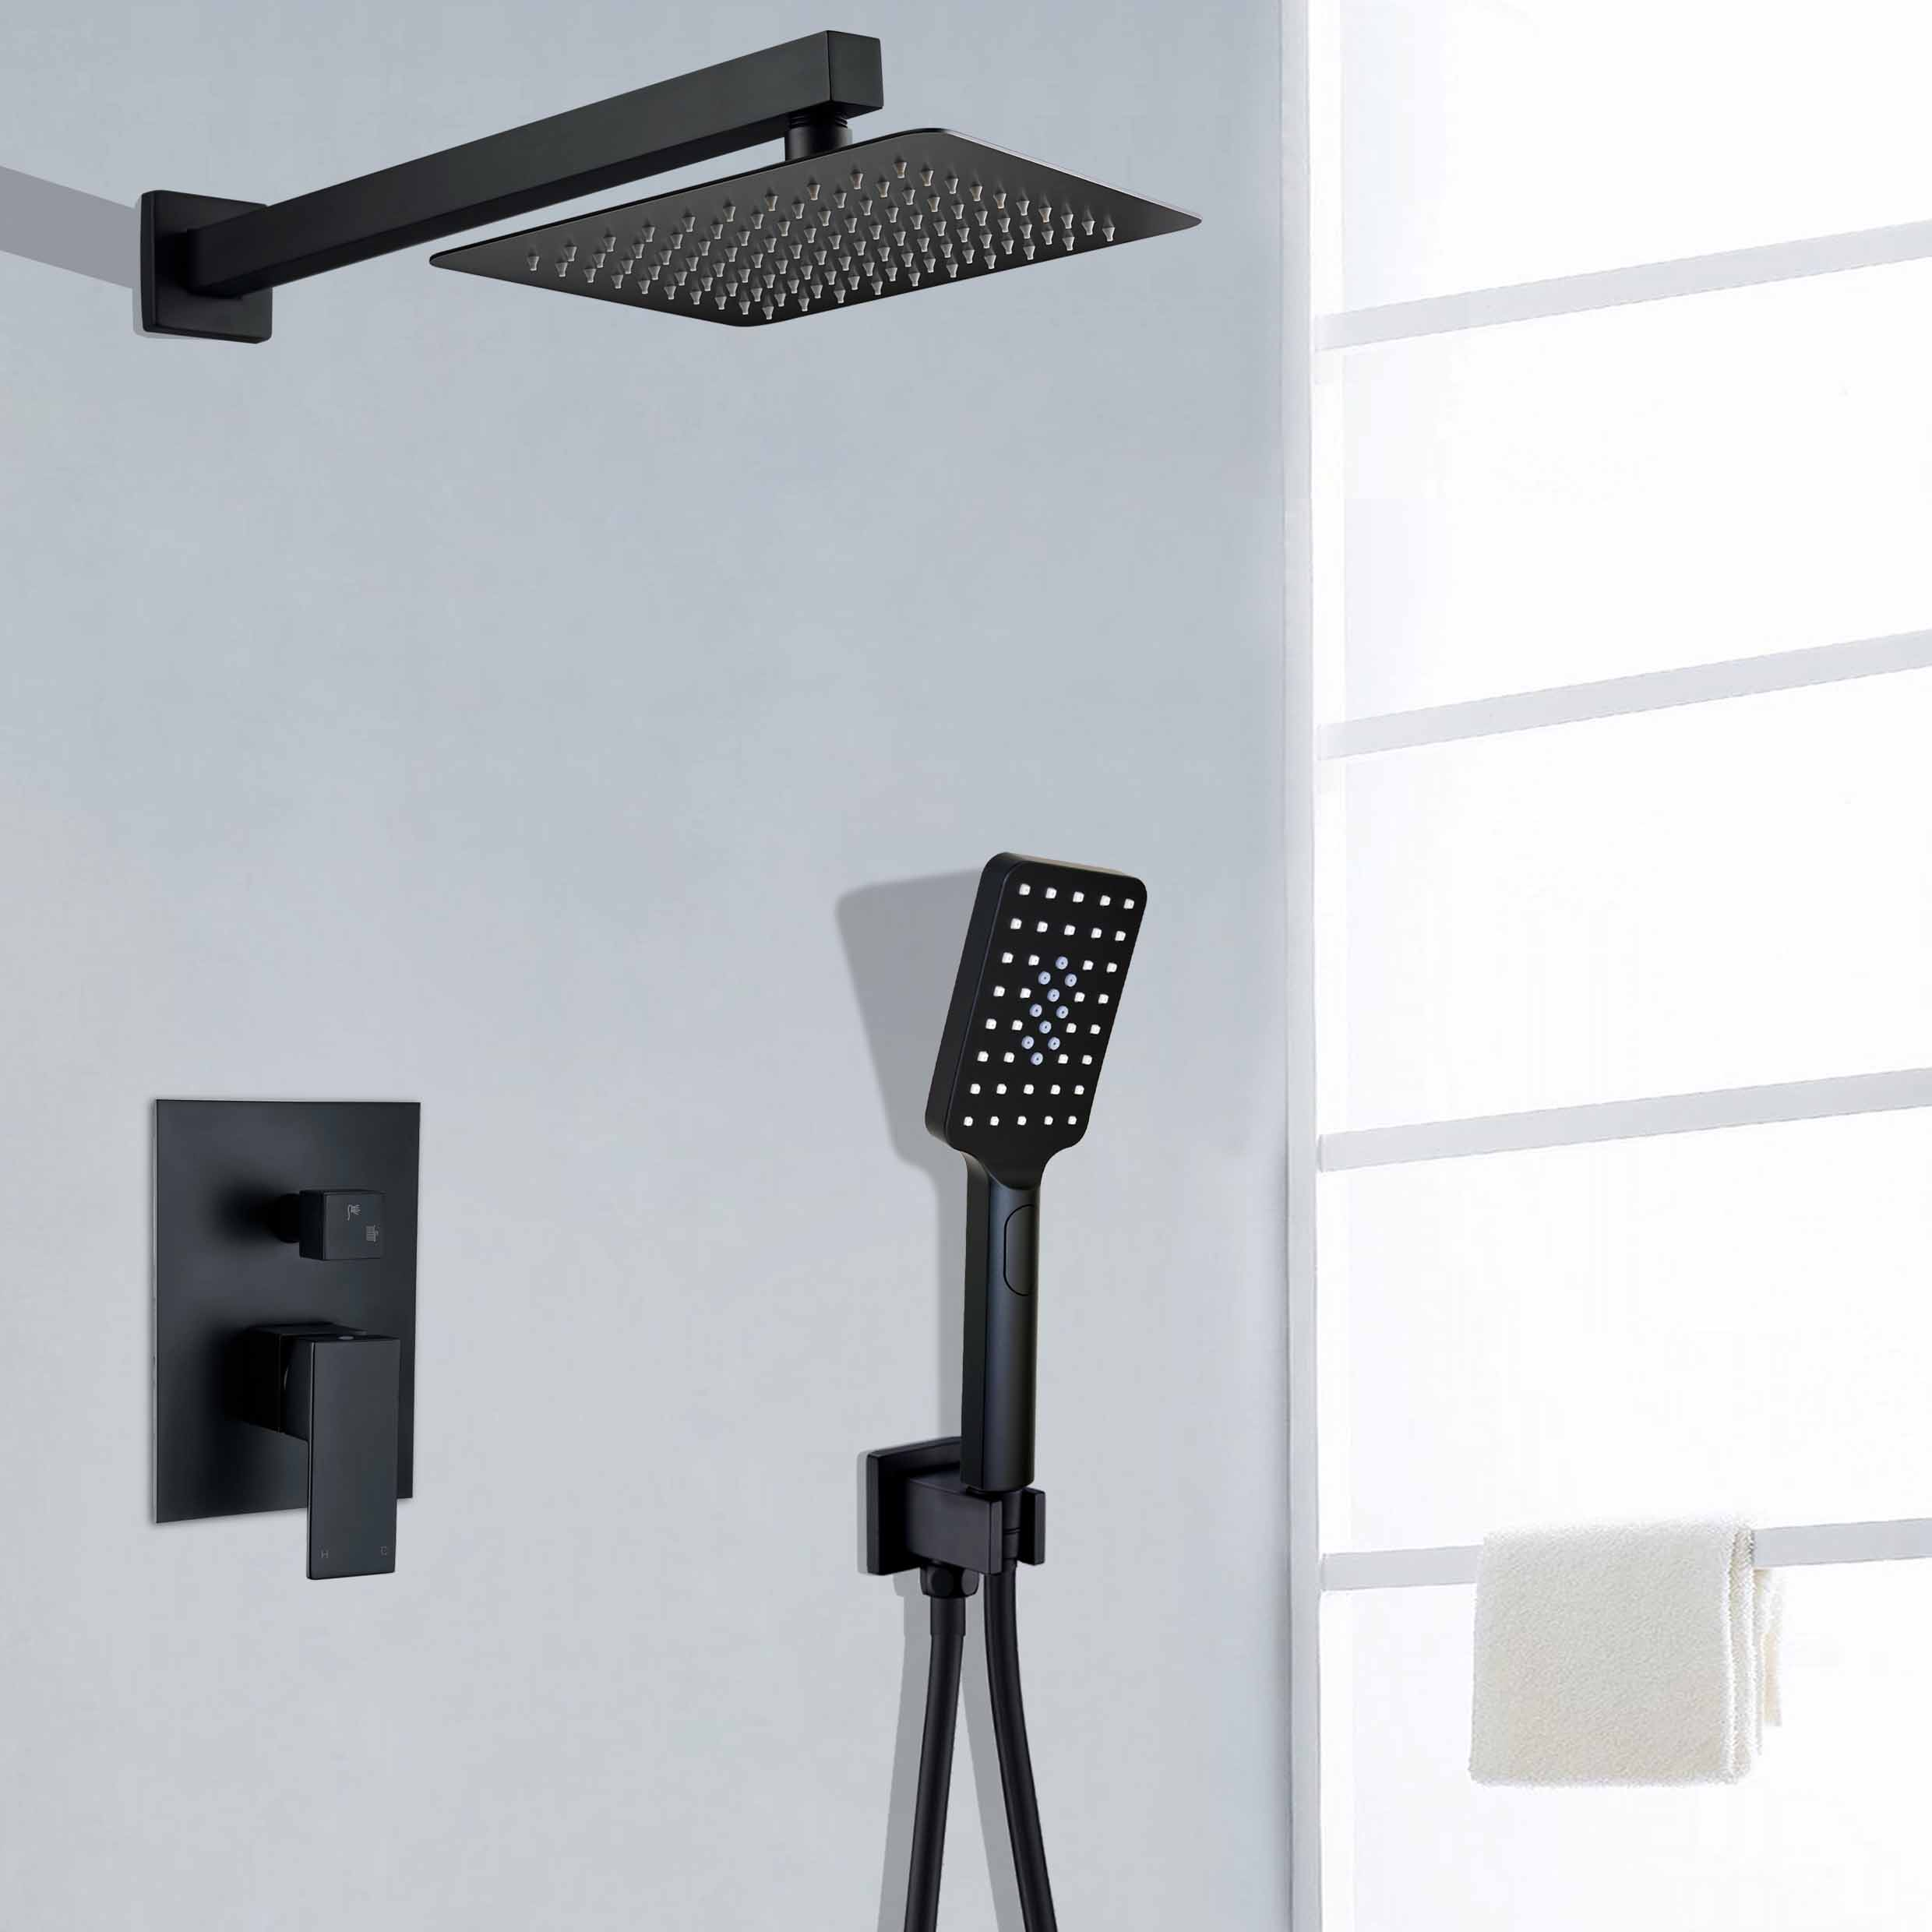 Details About Matte Black Twin Shower Set 8 Sus Head Wall Arm Handset Kit 2 Way Mixer Valve